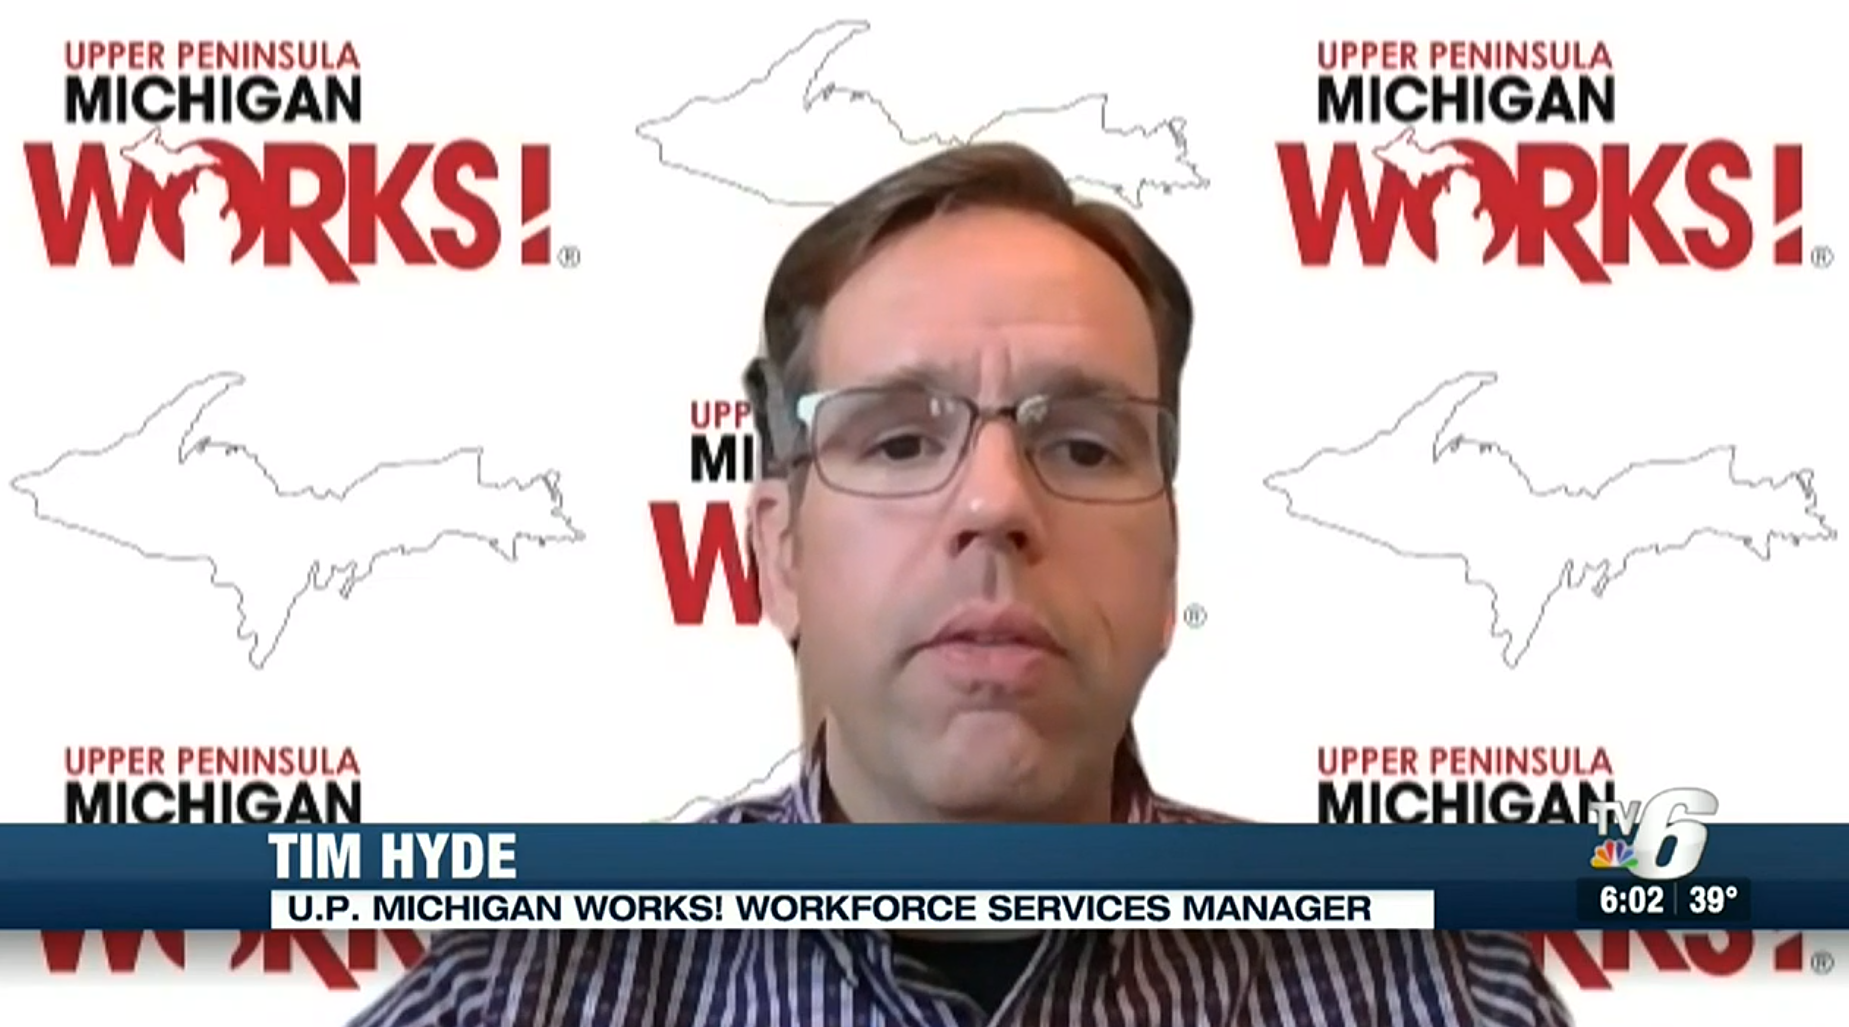 A screenshot of Tim Hyde's interview with TV 6.